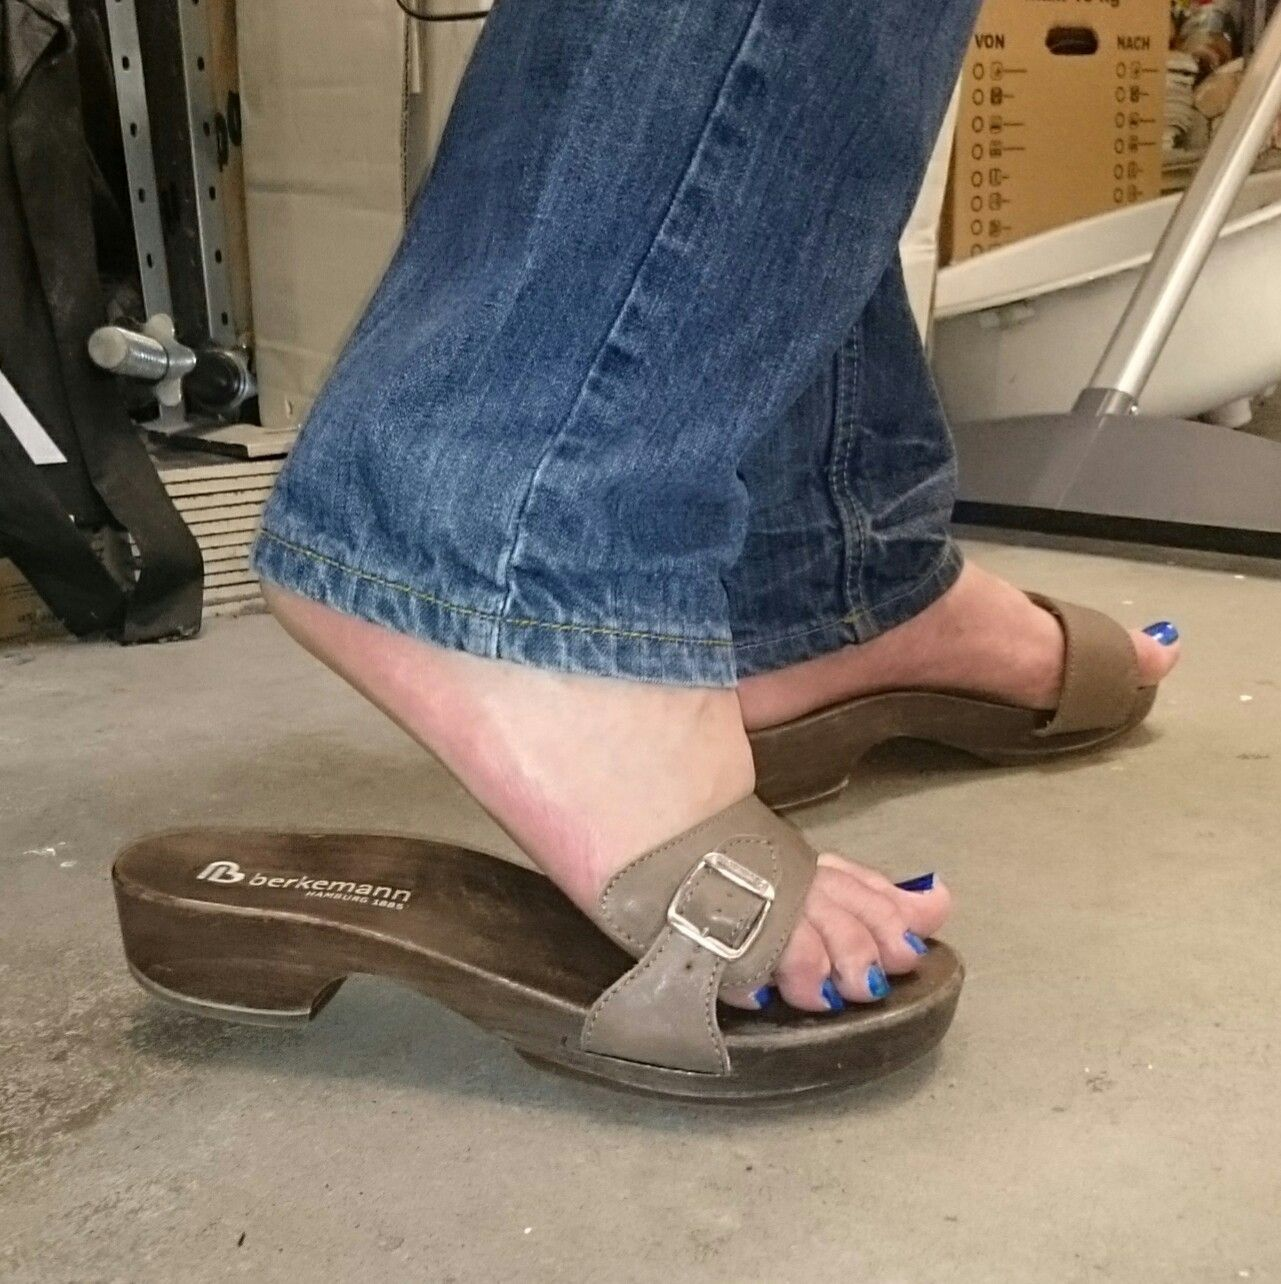 Pin by Angelo V. on Footwear in 2021 | Dr scholls sandals